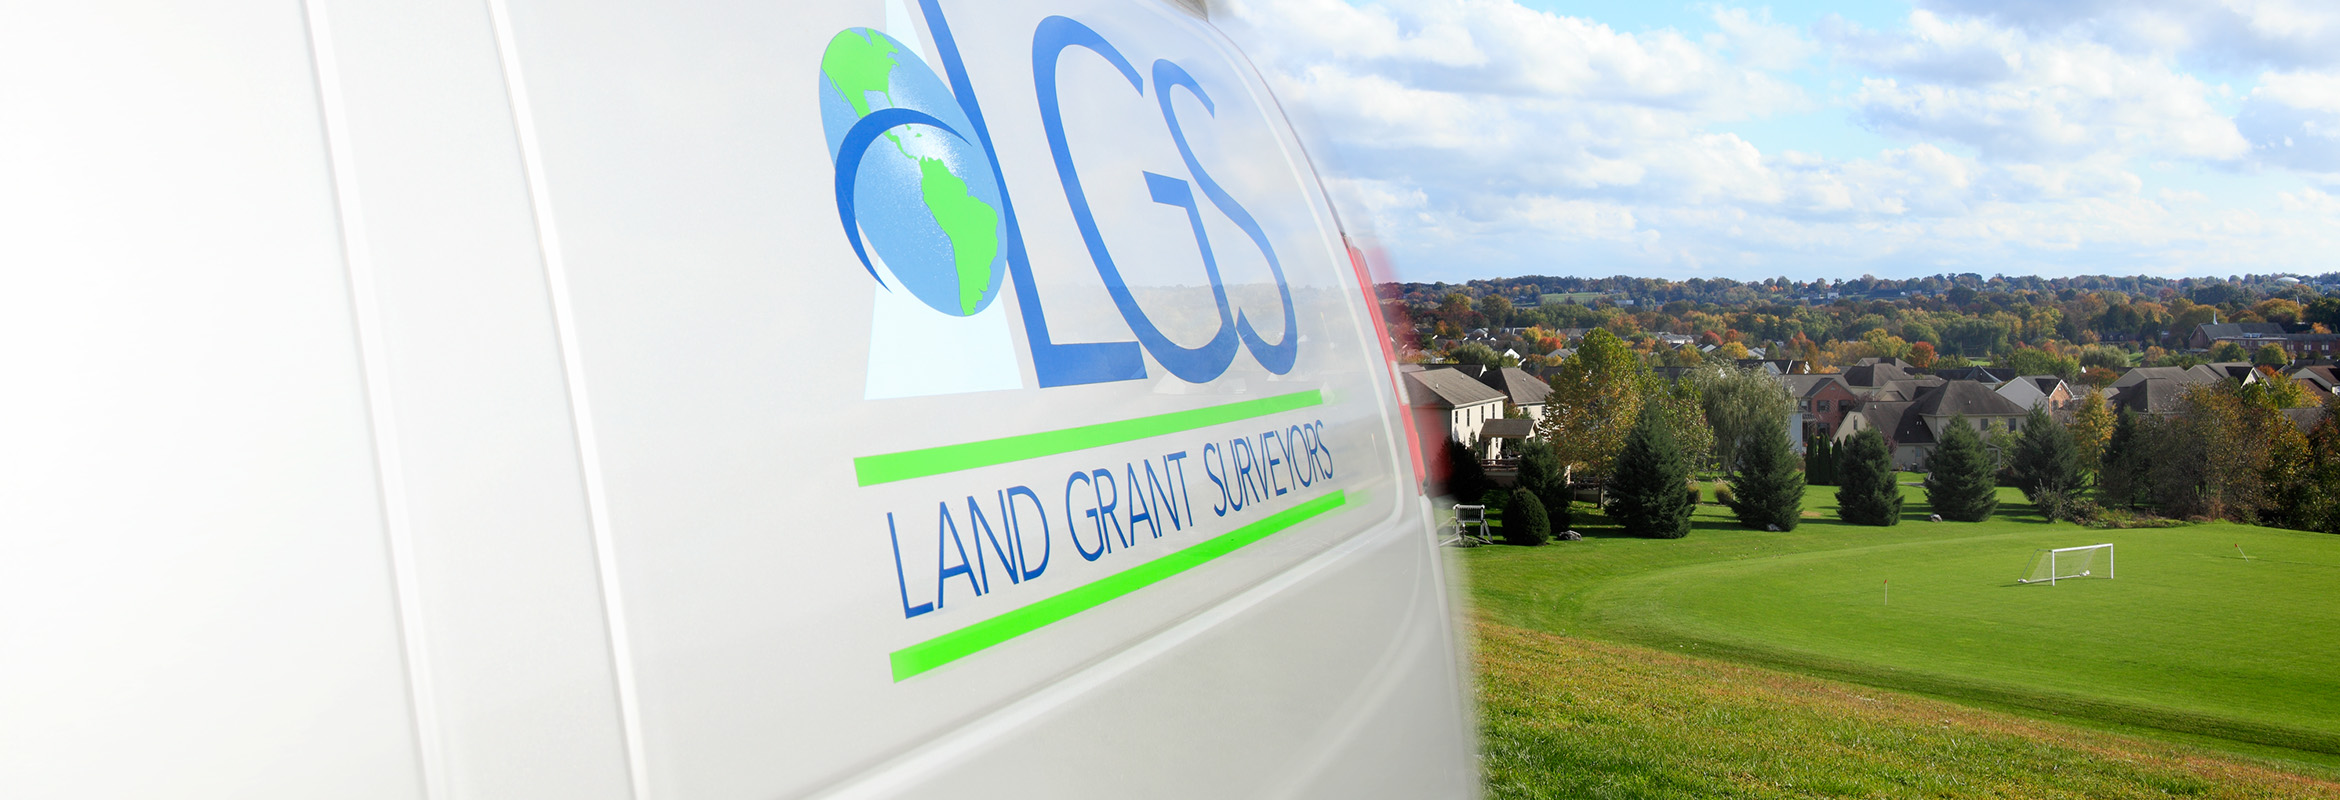 Land Grant Surveyors, We're all about pleasing customers!